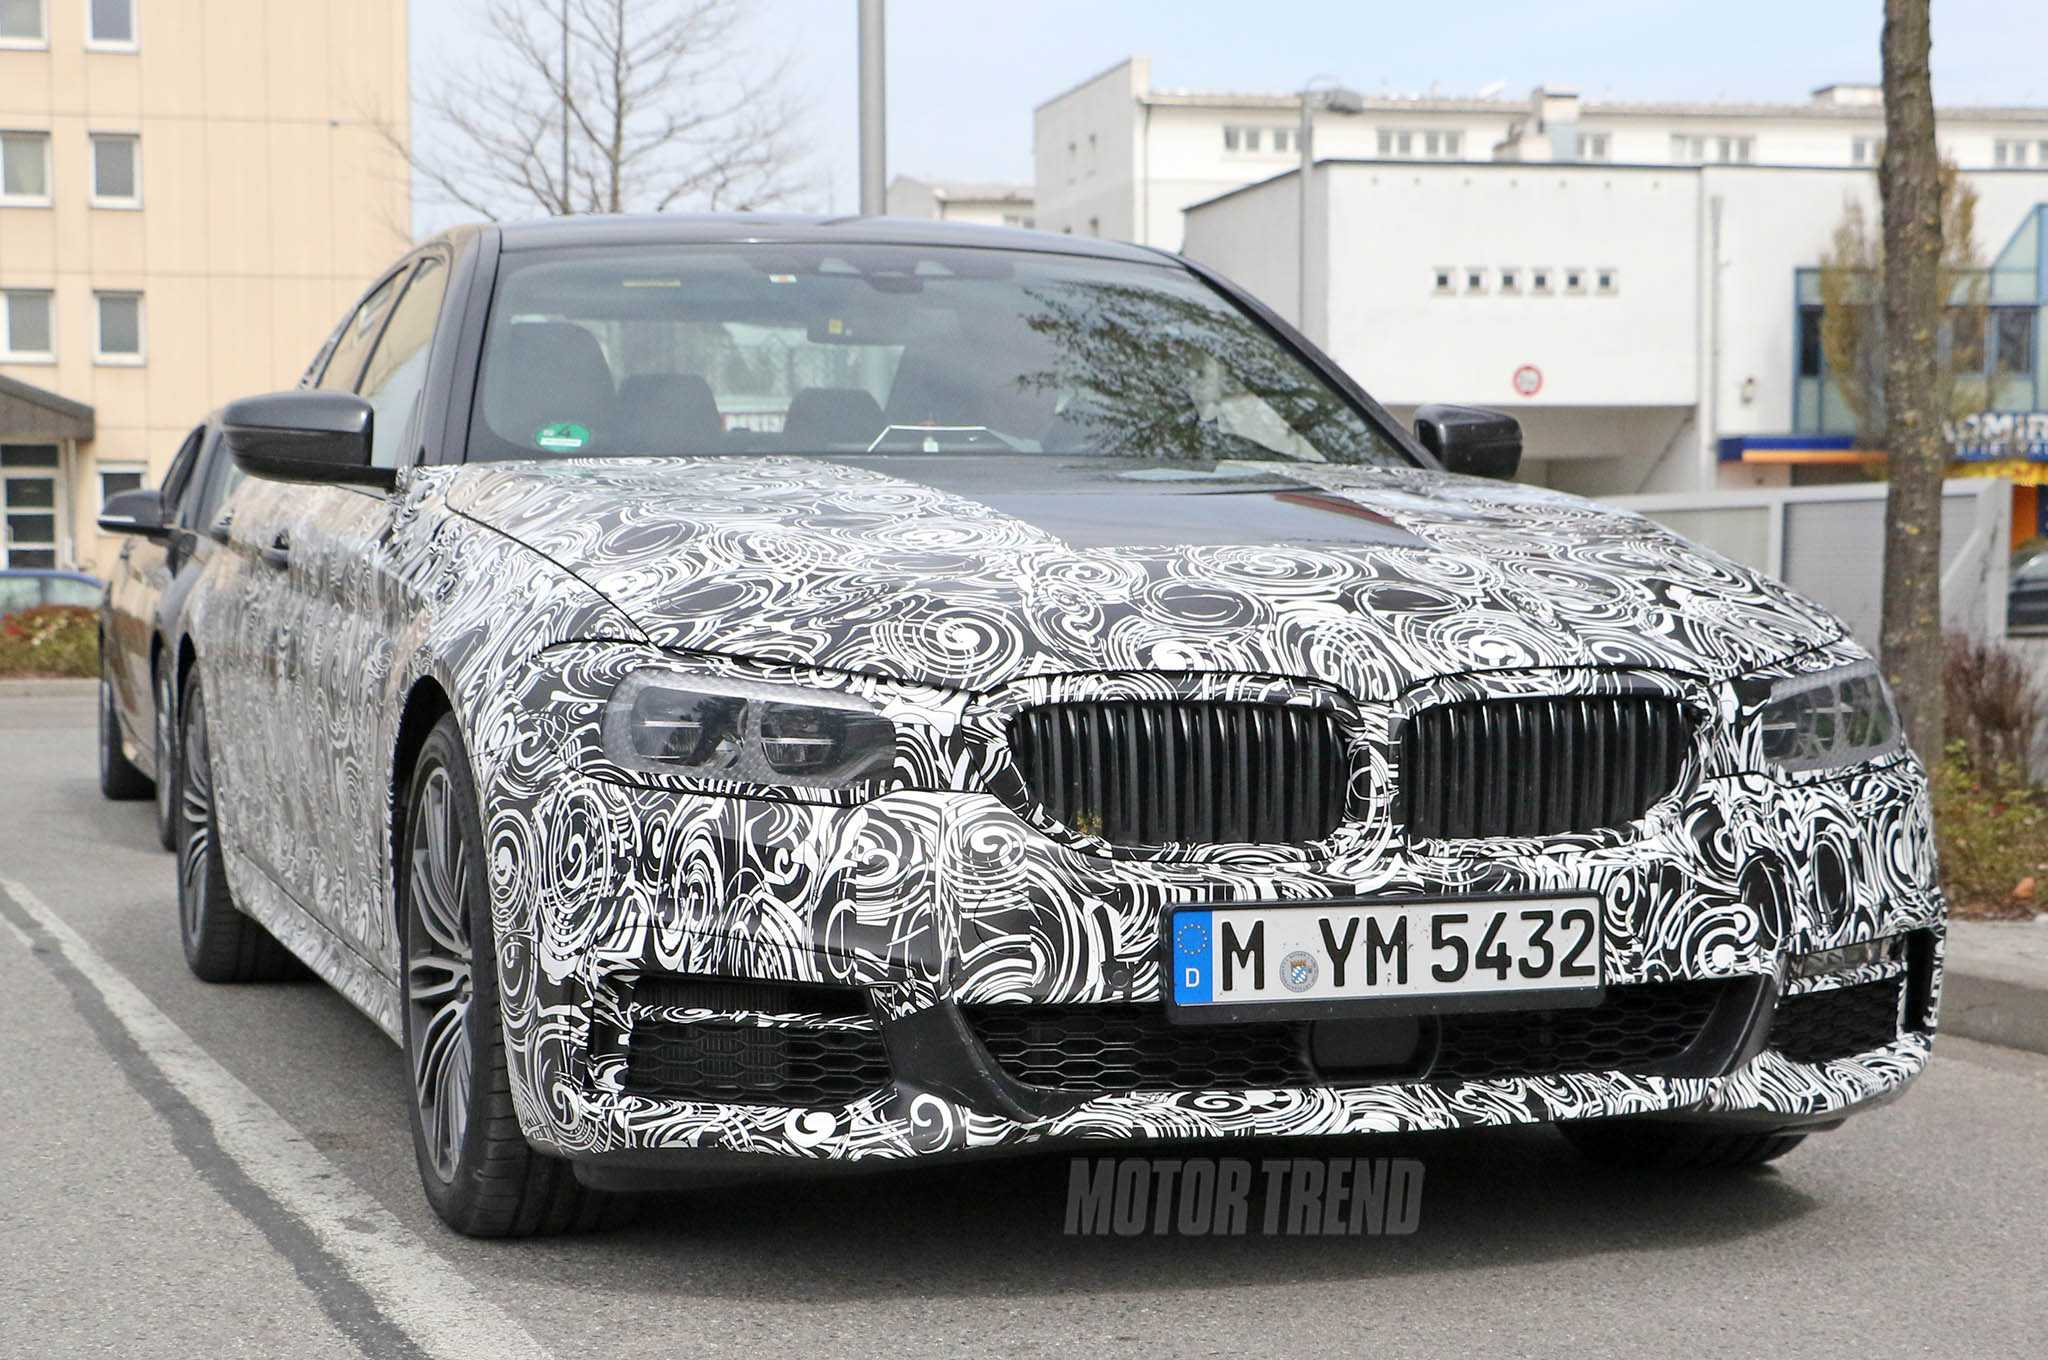 BMW 5 Series Spotted On The Road, Spy Shots Emerge